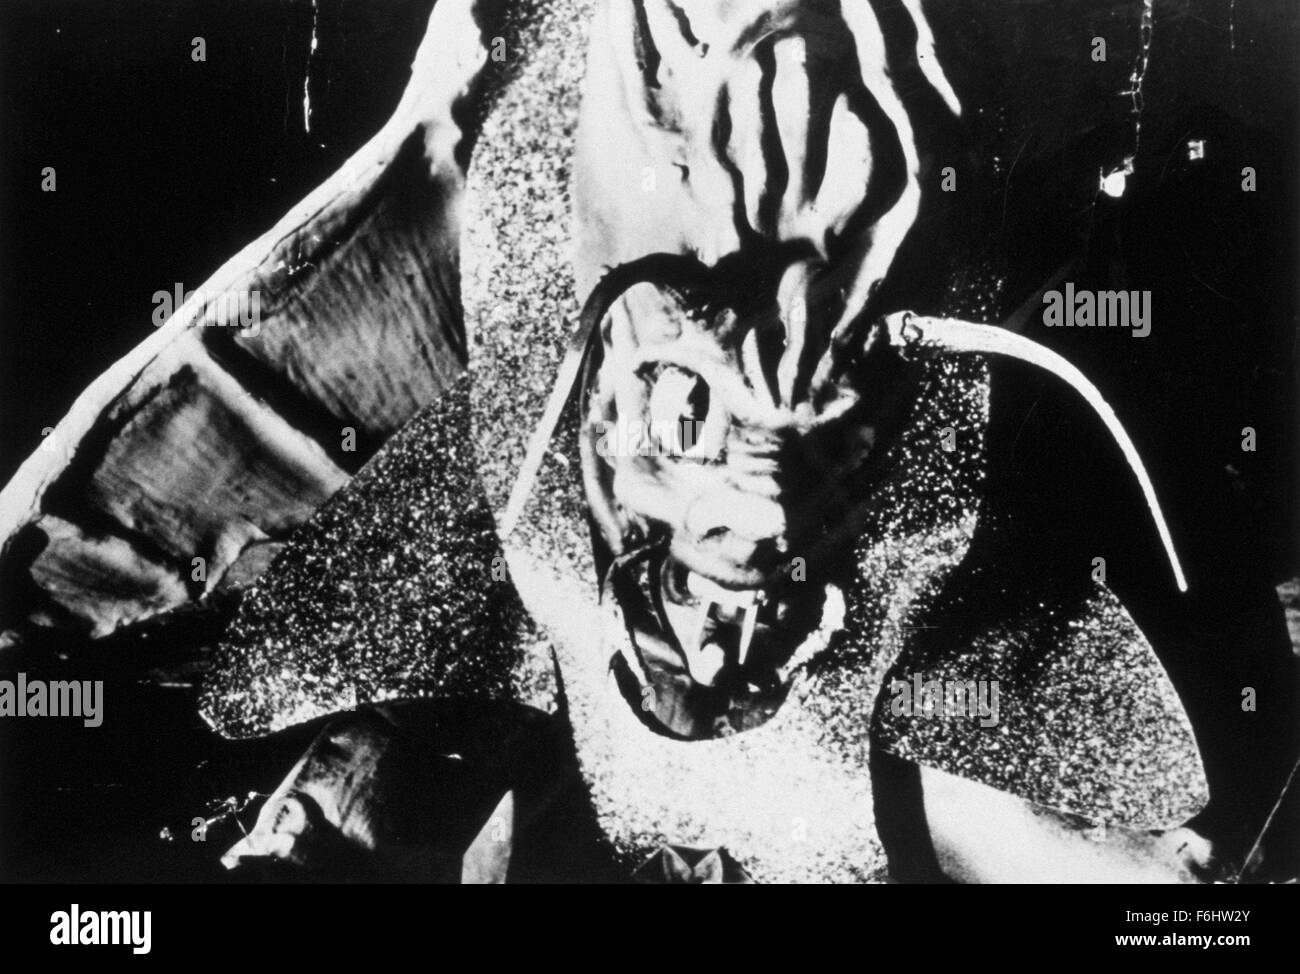 1955, Film Title: BEAST WITH 1, 000, 000 EYES, Director: DAVID KRAMARSKY, Studio: AMERICAN INT'L, Pictured: - Stock Image